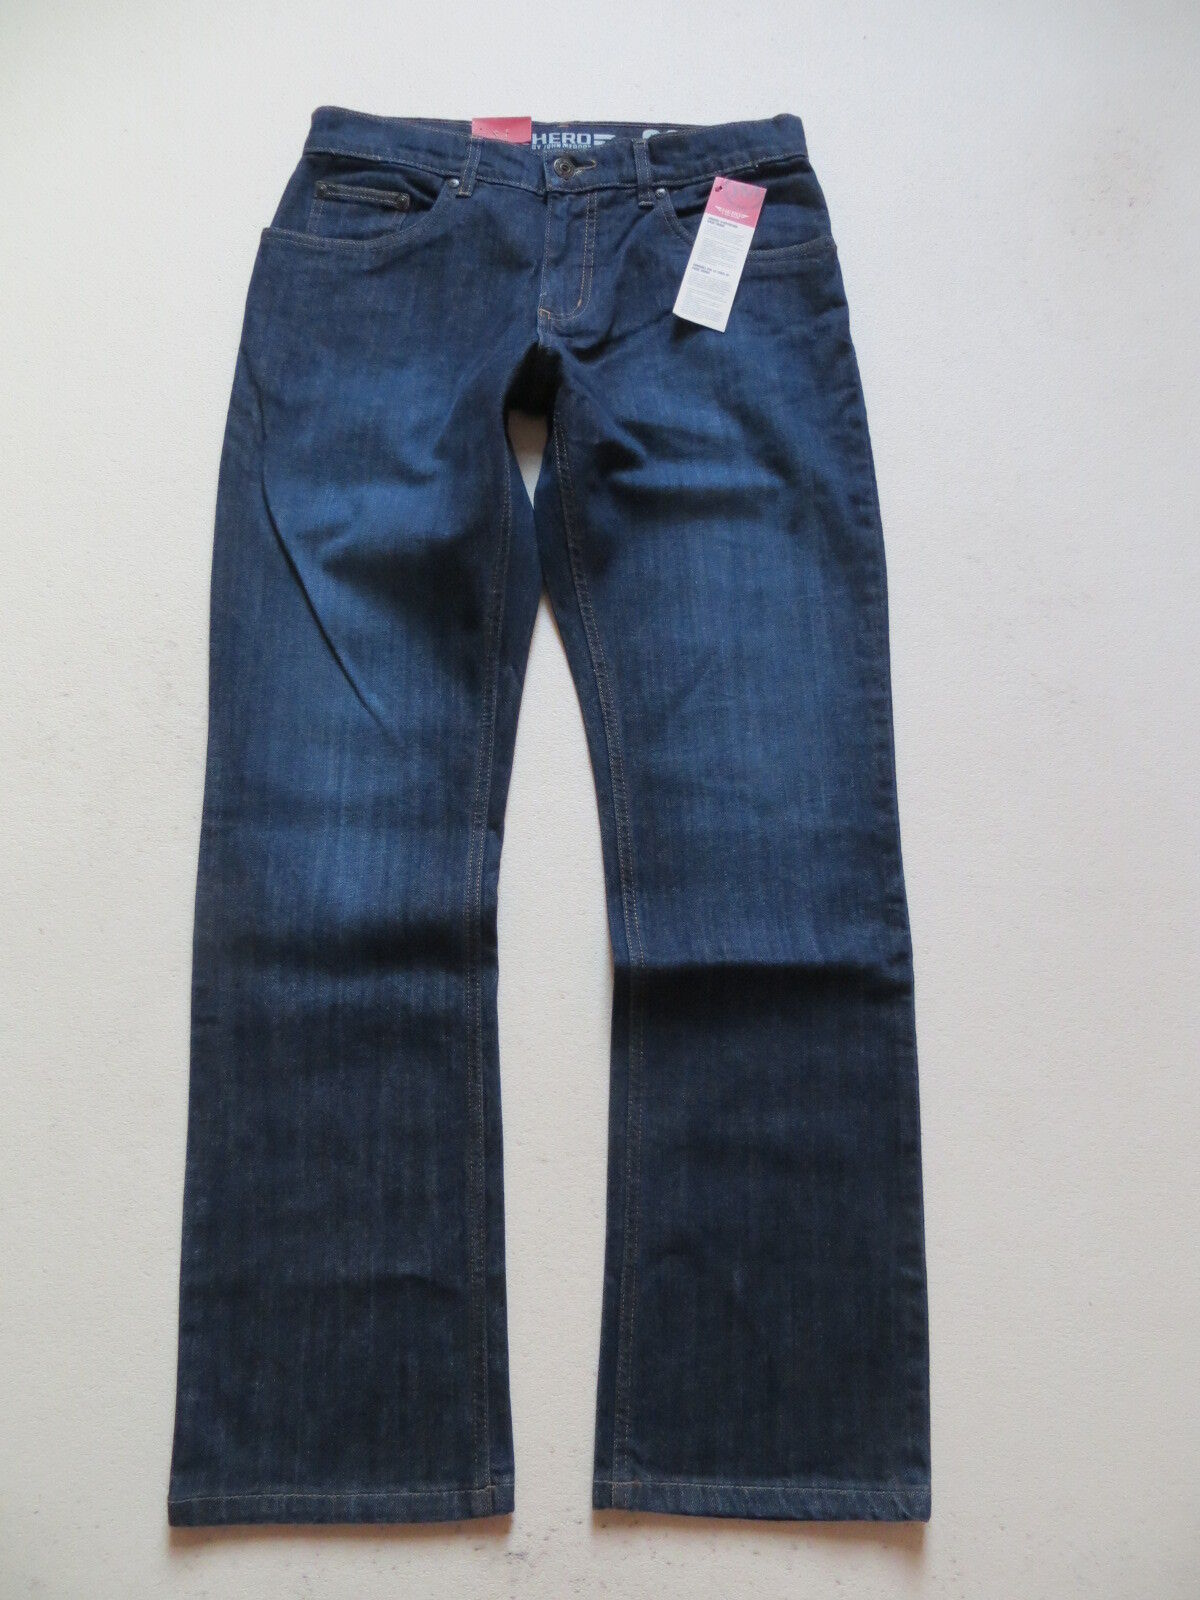 HERO  BOSTON  Jeans Hose W 40  L30, dark used Stretch Denim, NEU   sehr bequem